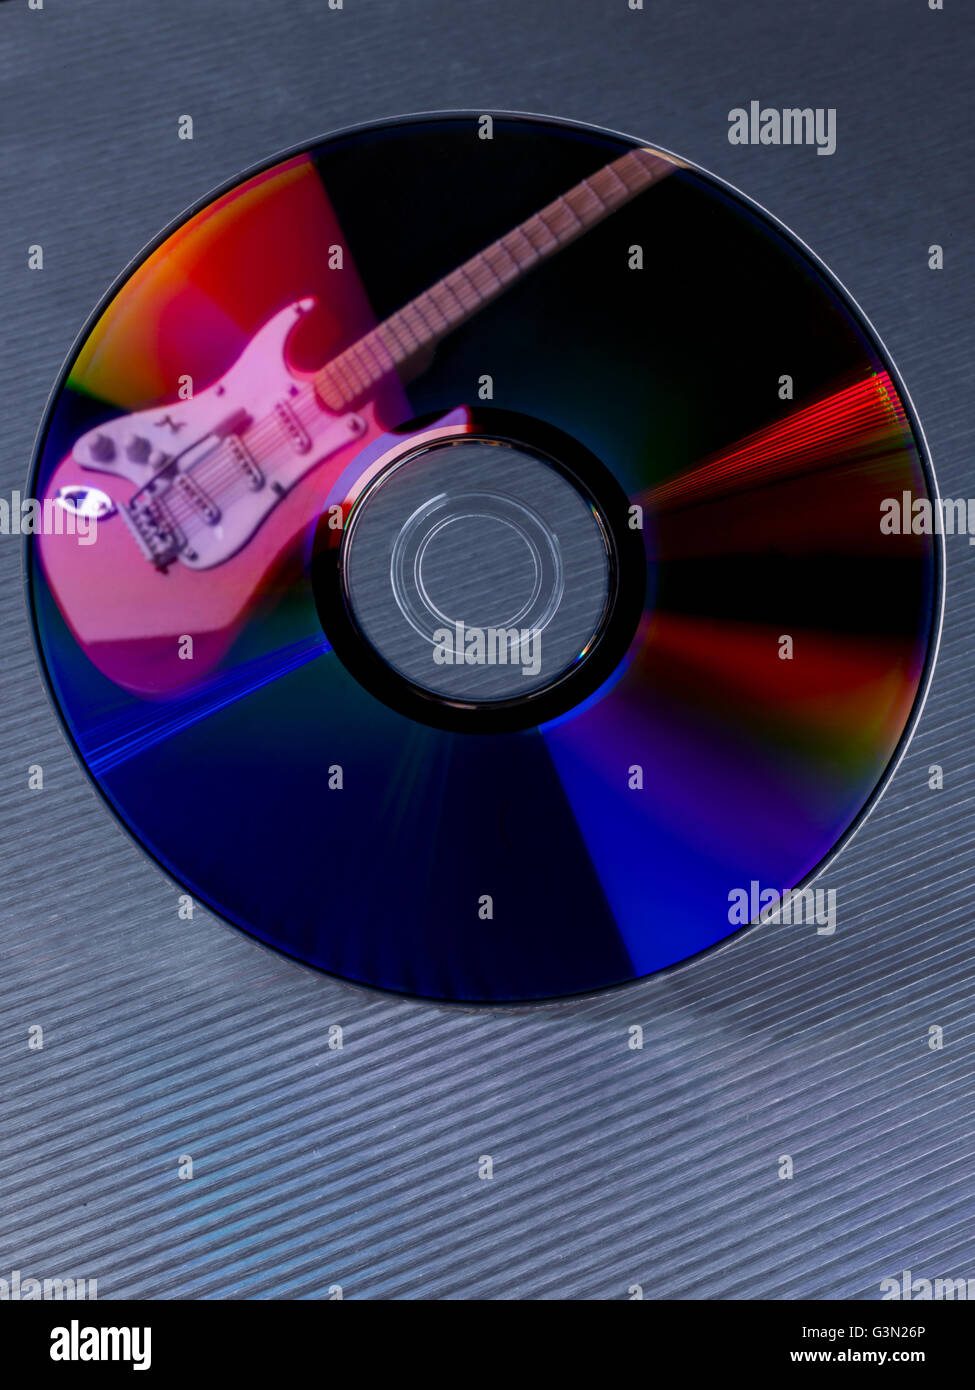 Electric guitar in a Compact disc - Stock Image